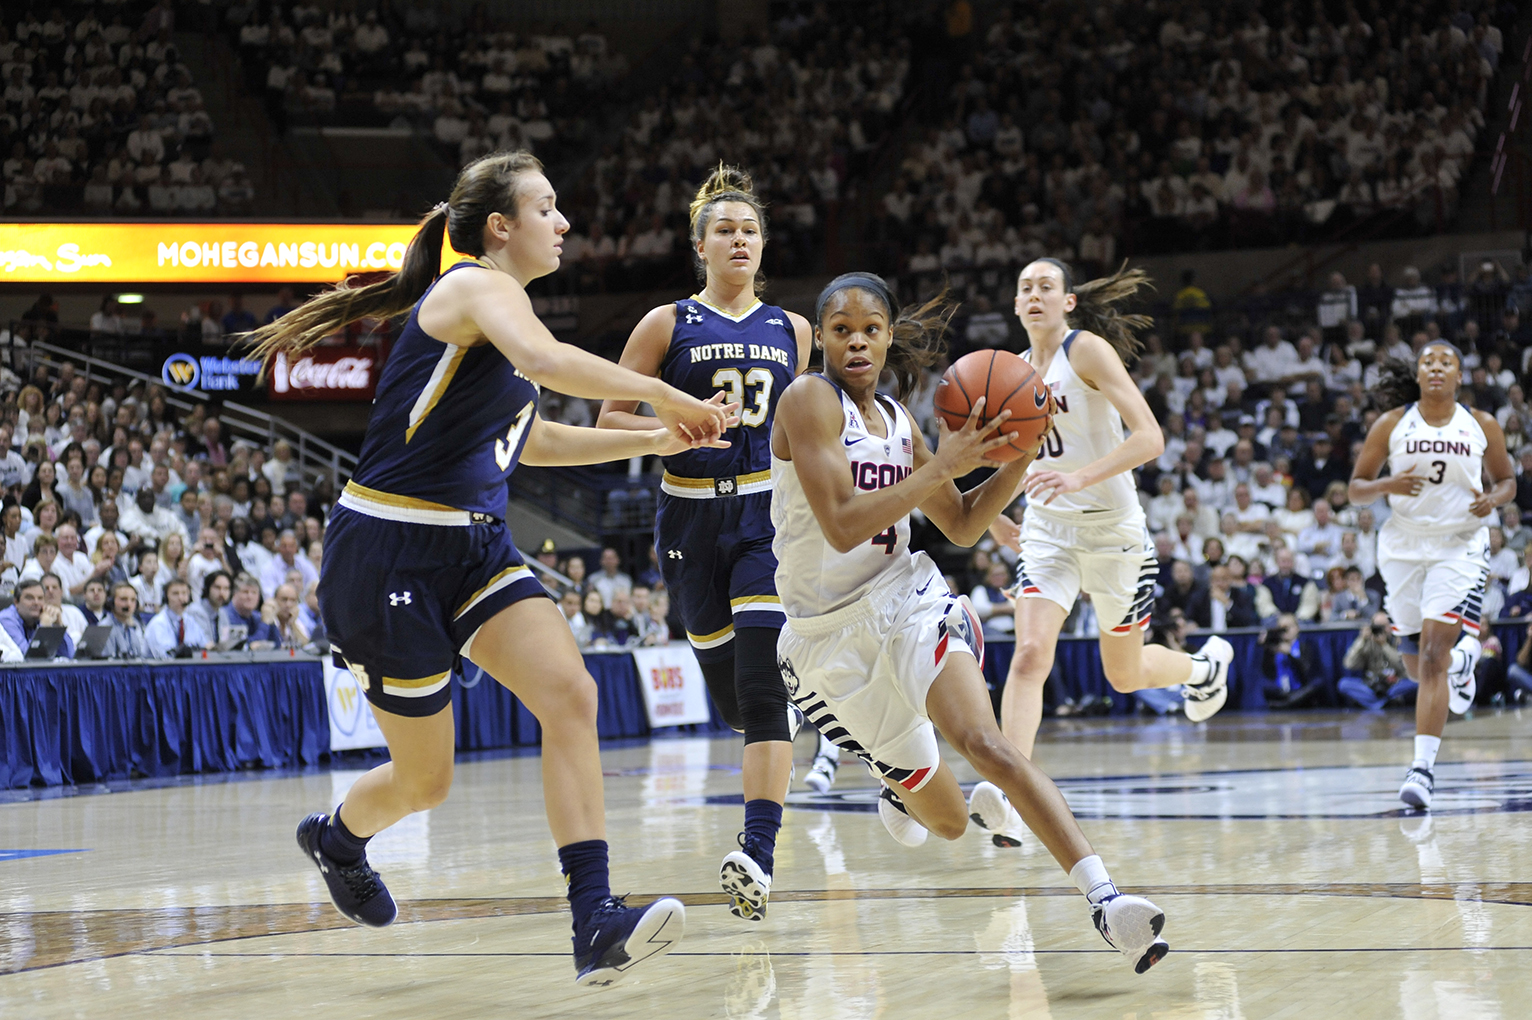 UConn women's basketball senior guard Moriah Jefferson is seen driving toward the basket during the Huskies' game against No. 3 Notre Dame at Gampel Pavilion in Storrs, Connecticut on Saturday, Dec. 5, 2015. (Jason Jiang/The Daily Campus)